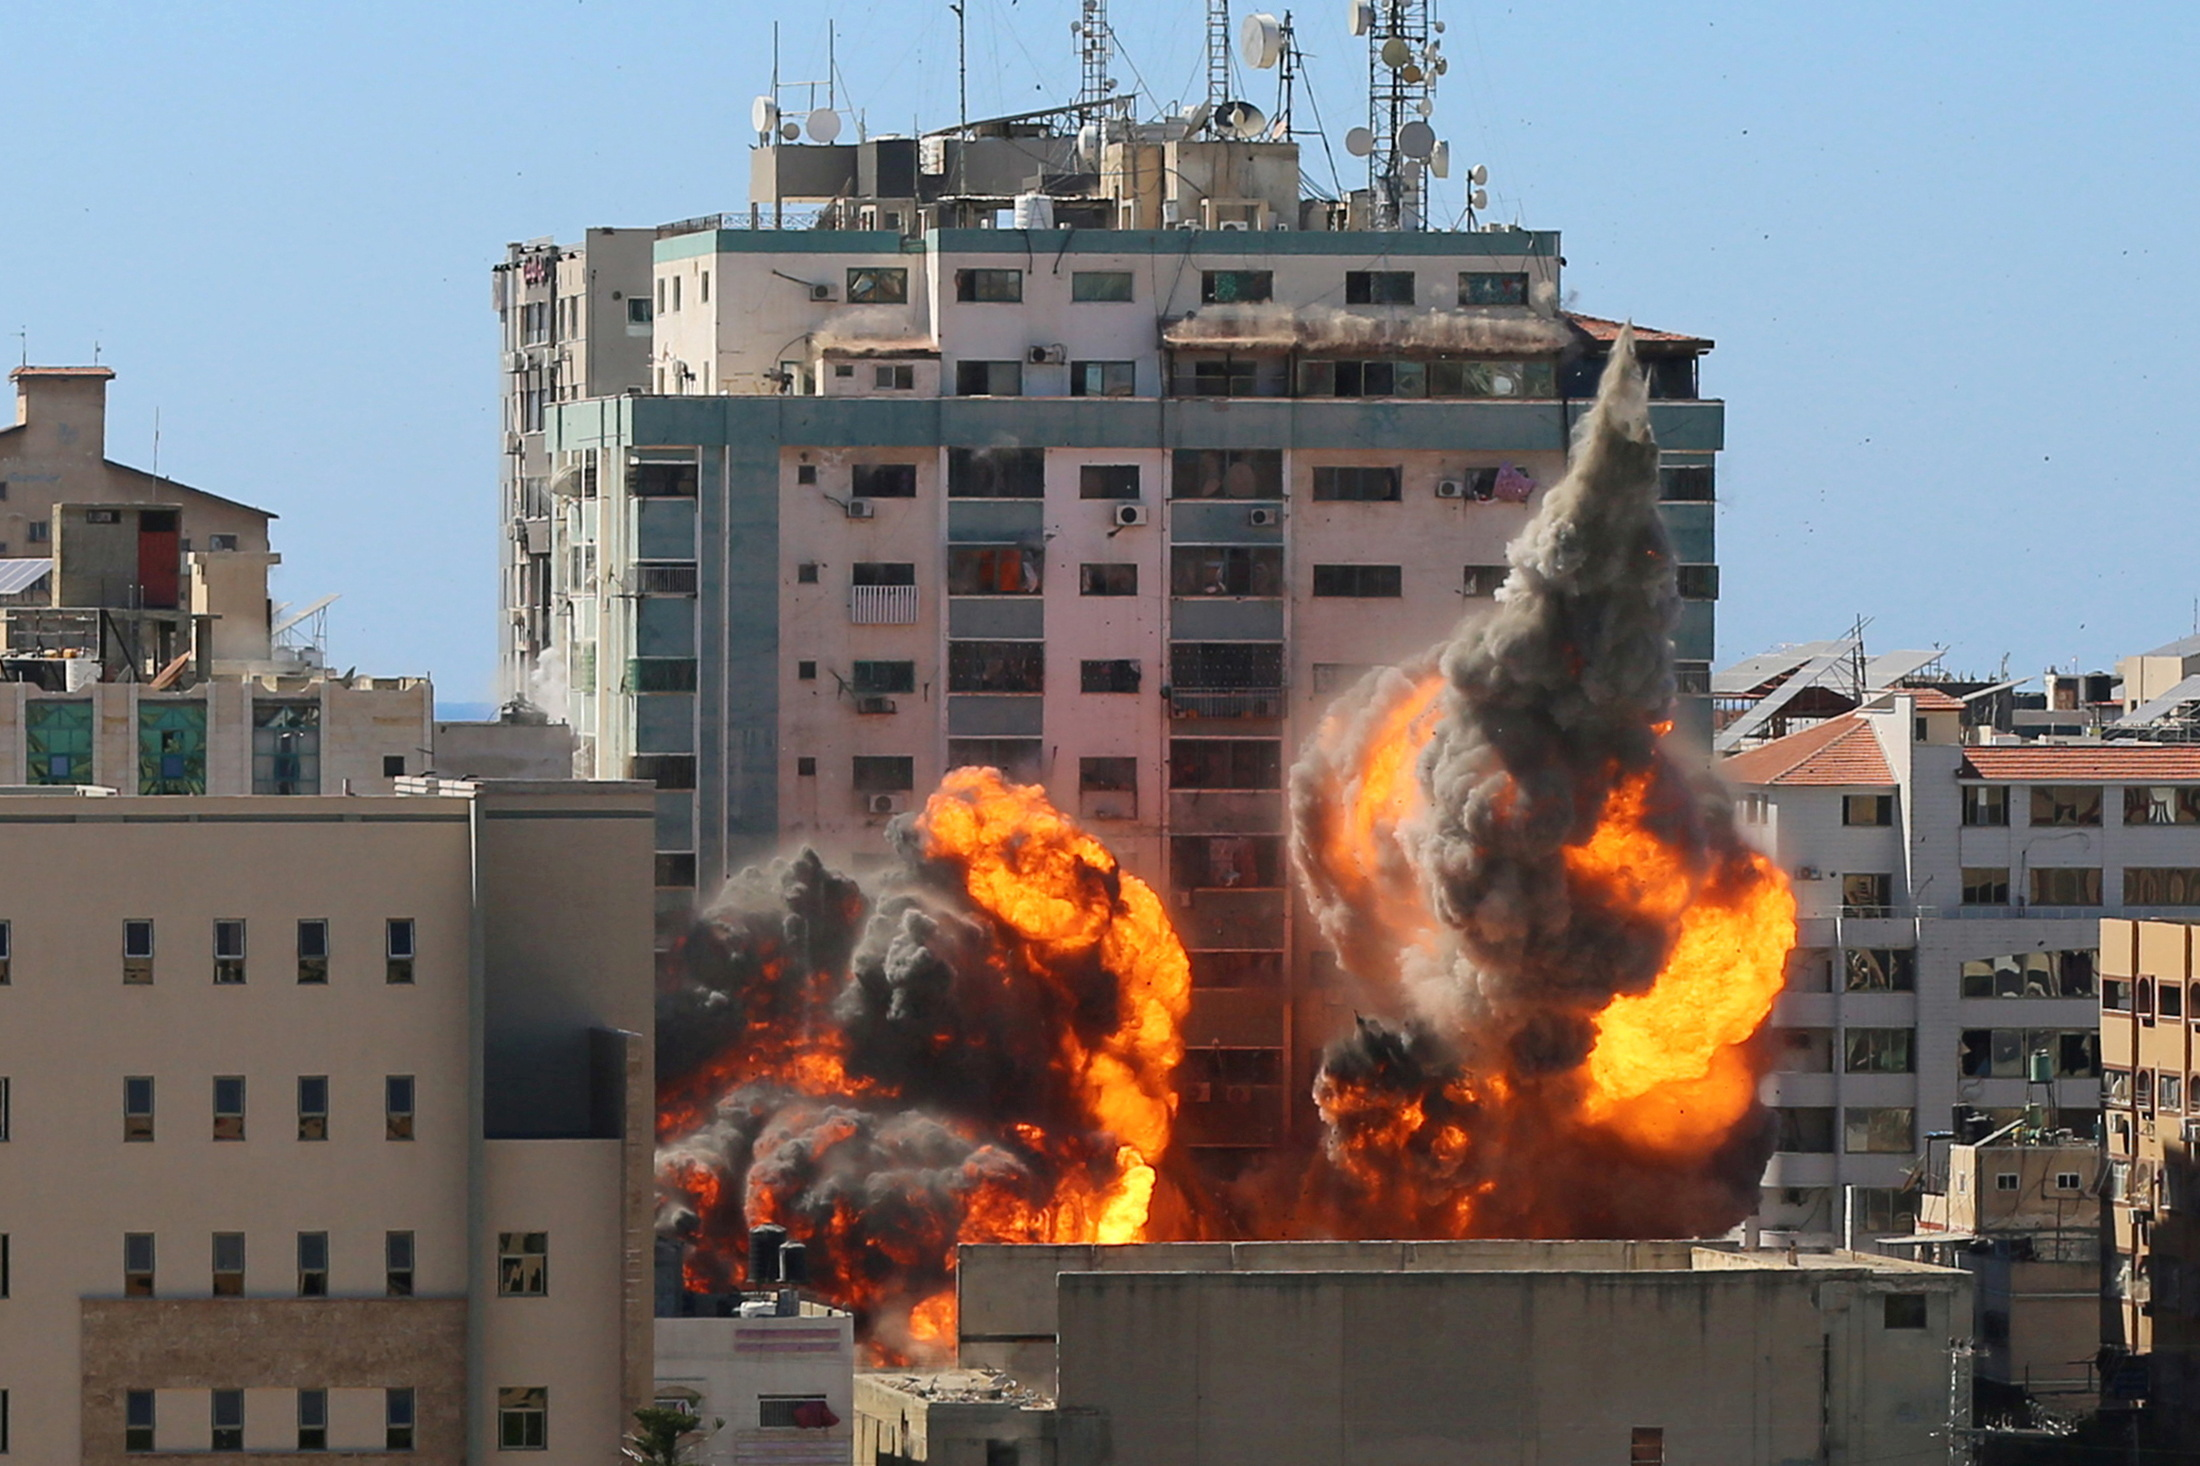 The al-Jalaa building housing Associated Press (AP) and Al Jazeera media offices is hit by an Israeli air strike in Gaza City, May 15, 2021. REUTERS/Ashraf Abu Amrah  NO RESALES. NO ARCHIVES.     TPX IMAGES OF THE DAY